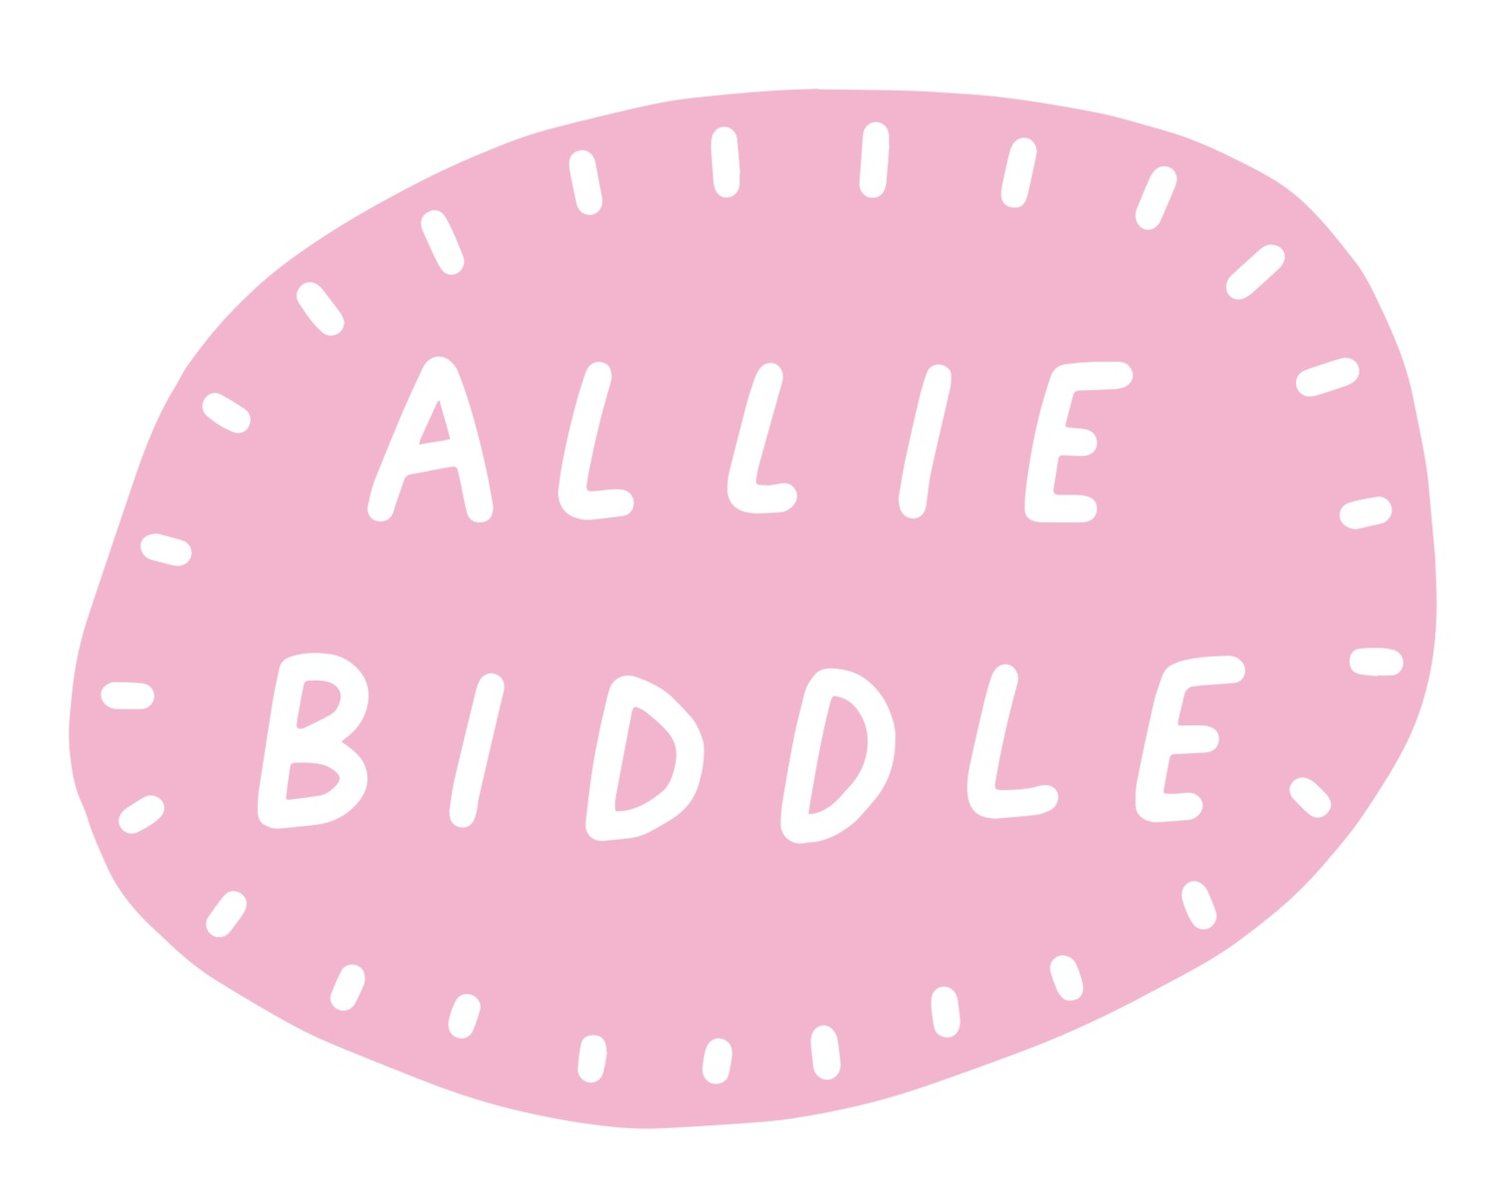 Allie Biddle